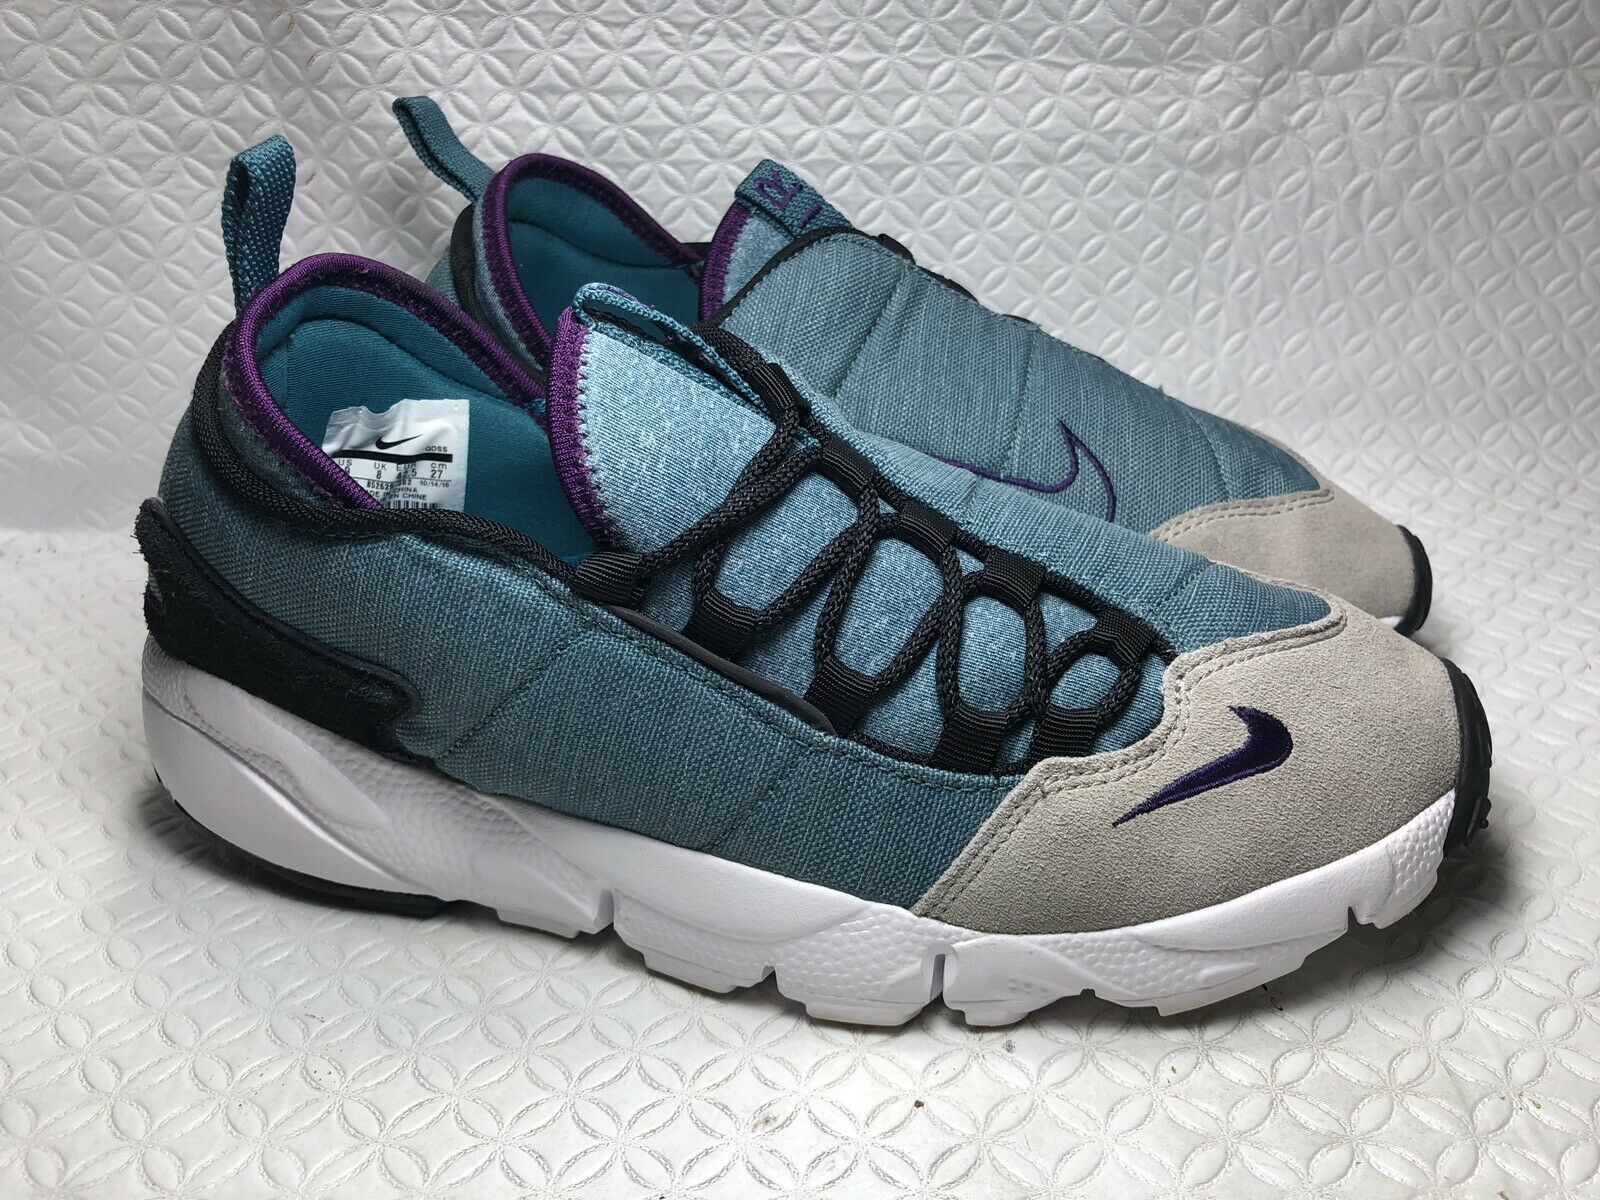 Nike Air Footscape Iced Jade  Night Purple Lace Up Running  Trainers shoes Sz-9